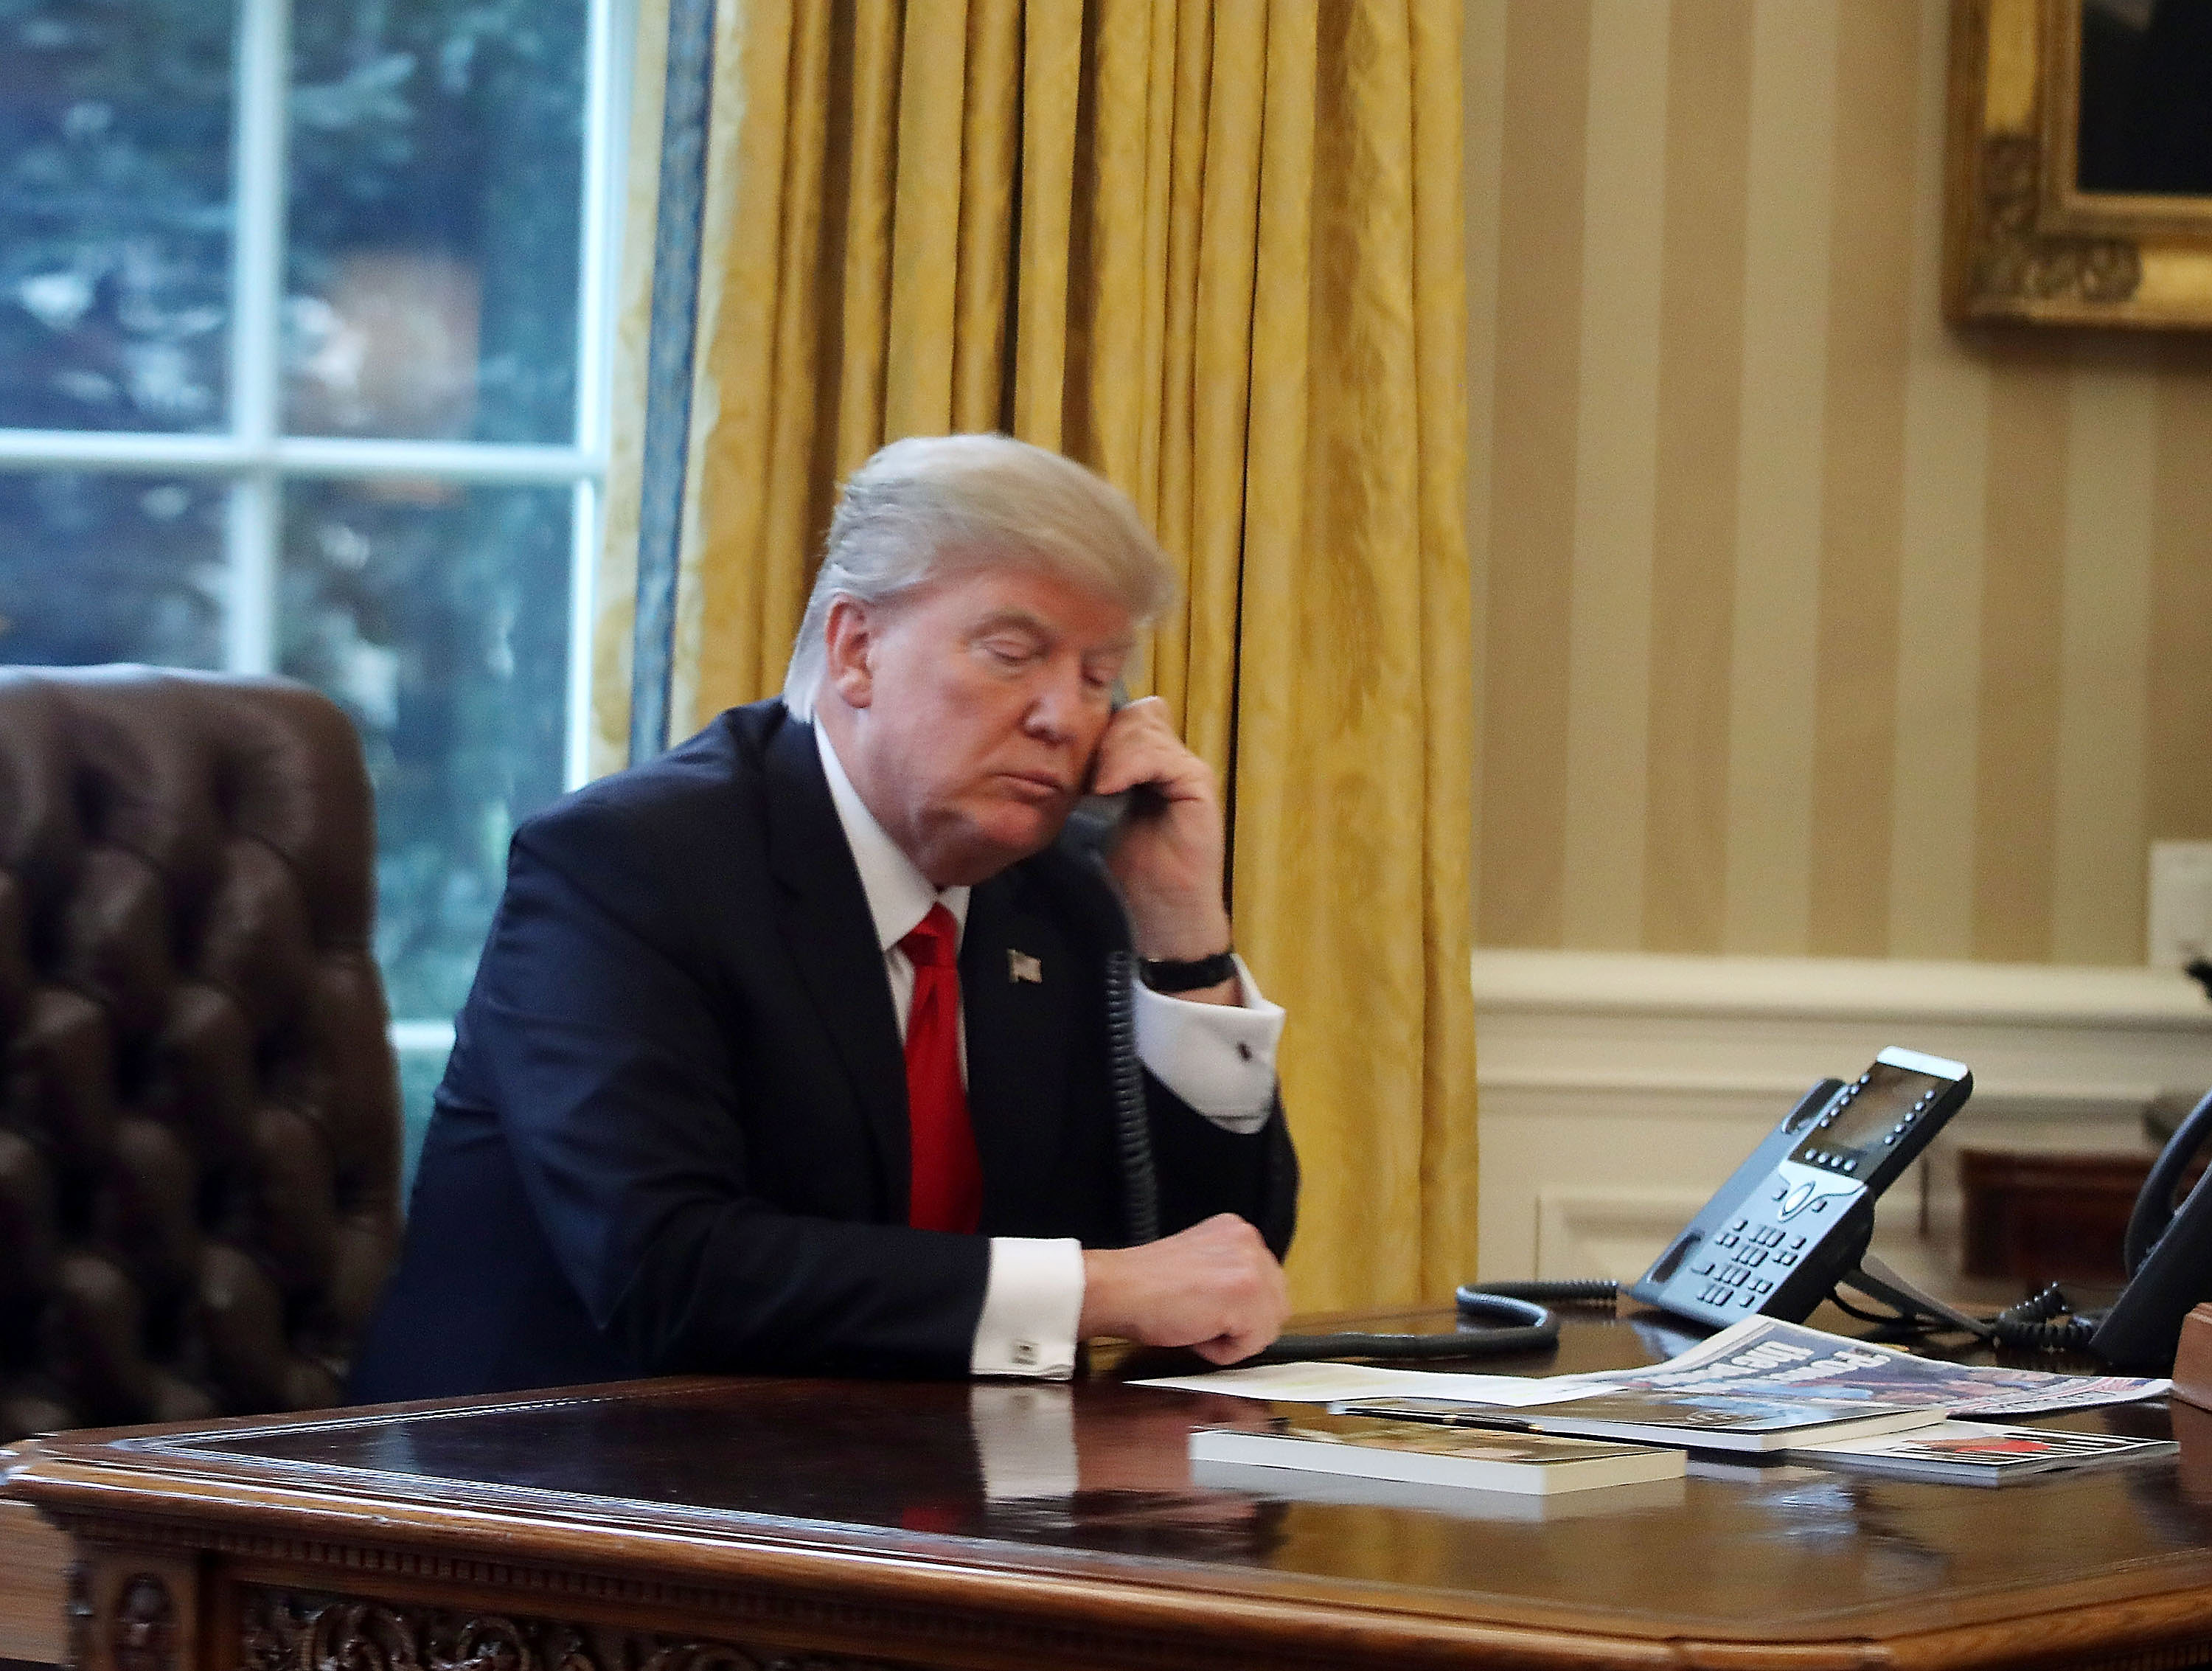 WASHINGTON, DC - JANUARY 29:  President Donald Trump is seen through a window speaking on the phone with King of Saudi Arabia, Salman bin Abd al-Aziz Al Saud, in the Oval Office of the White House, January 29, 2017 in Washington, DC. On Sunday, President Trump is making several phone calls with world leaders from the Oval Office.  (Photo by Mark Wilson/Getty Images)